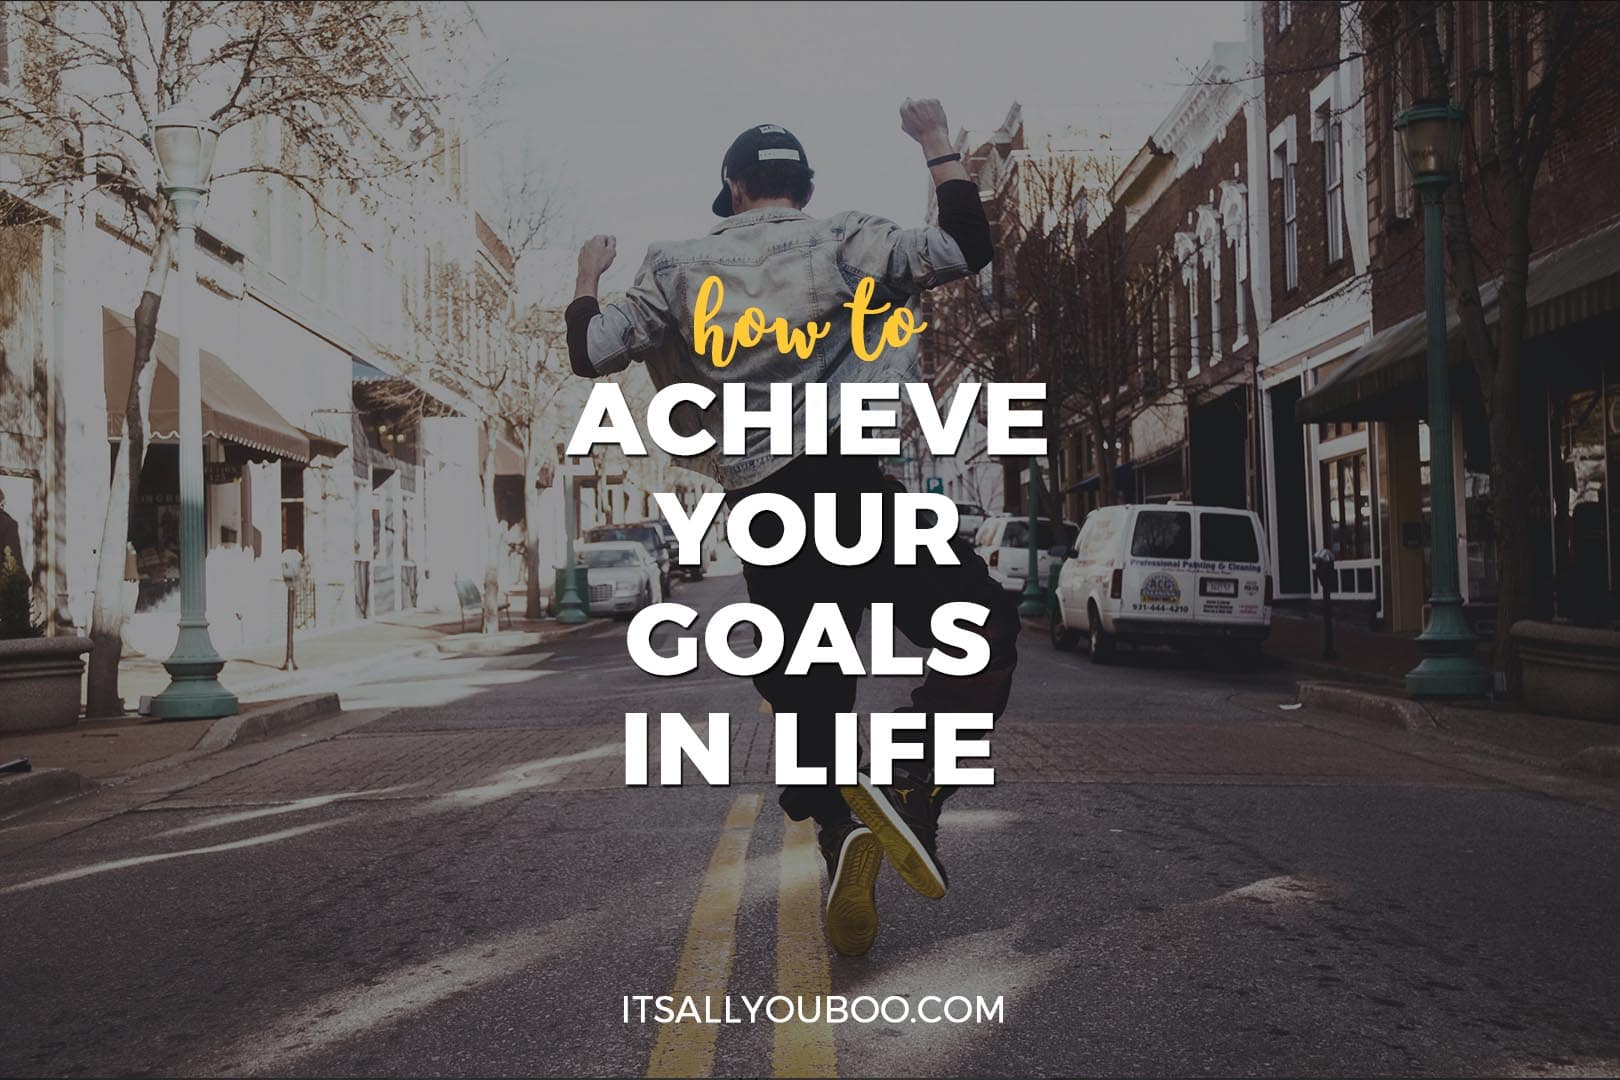 How to Achieve Your Goals in Life